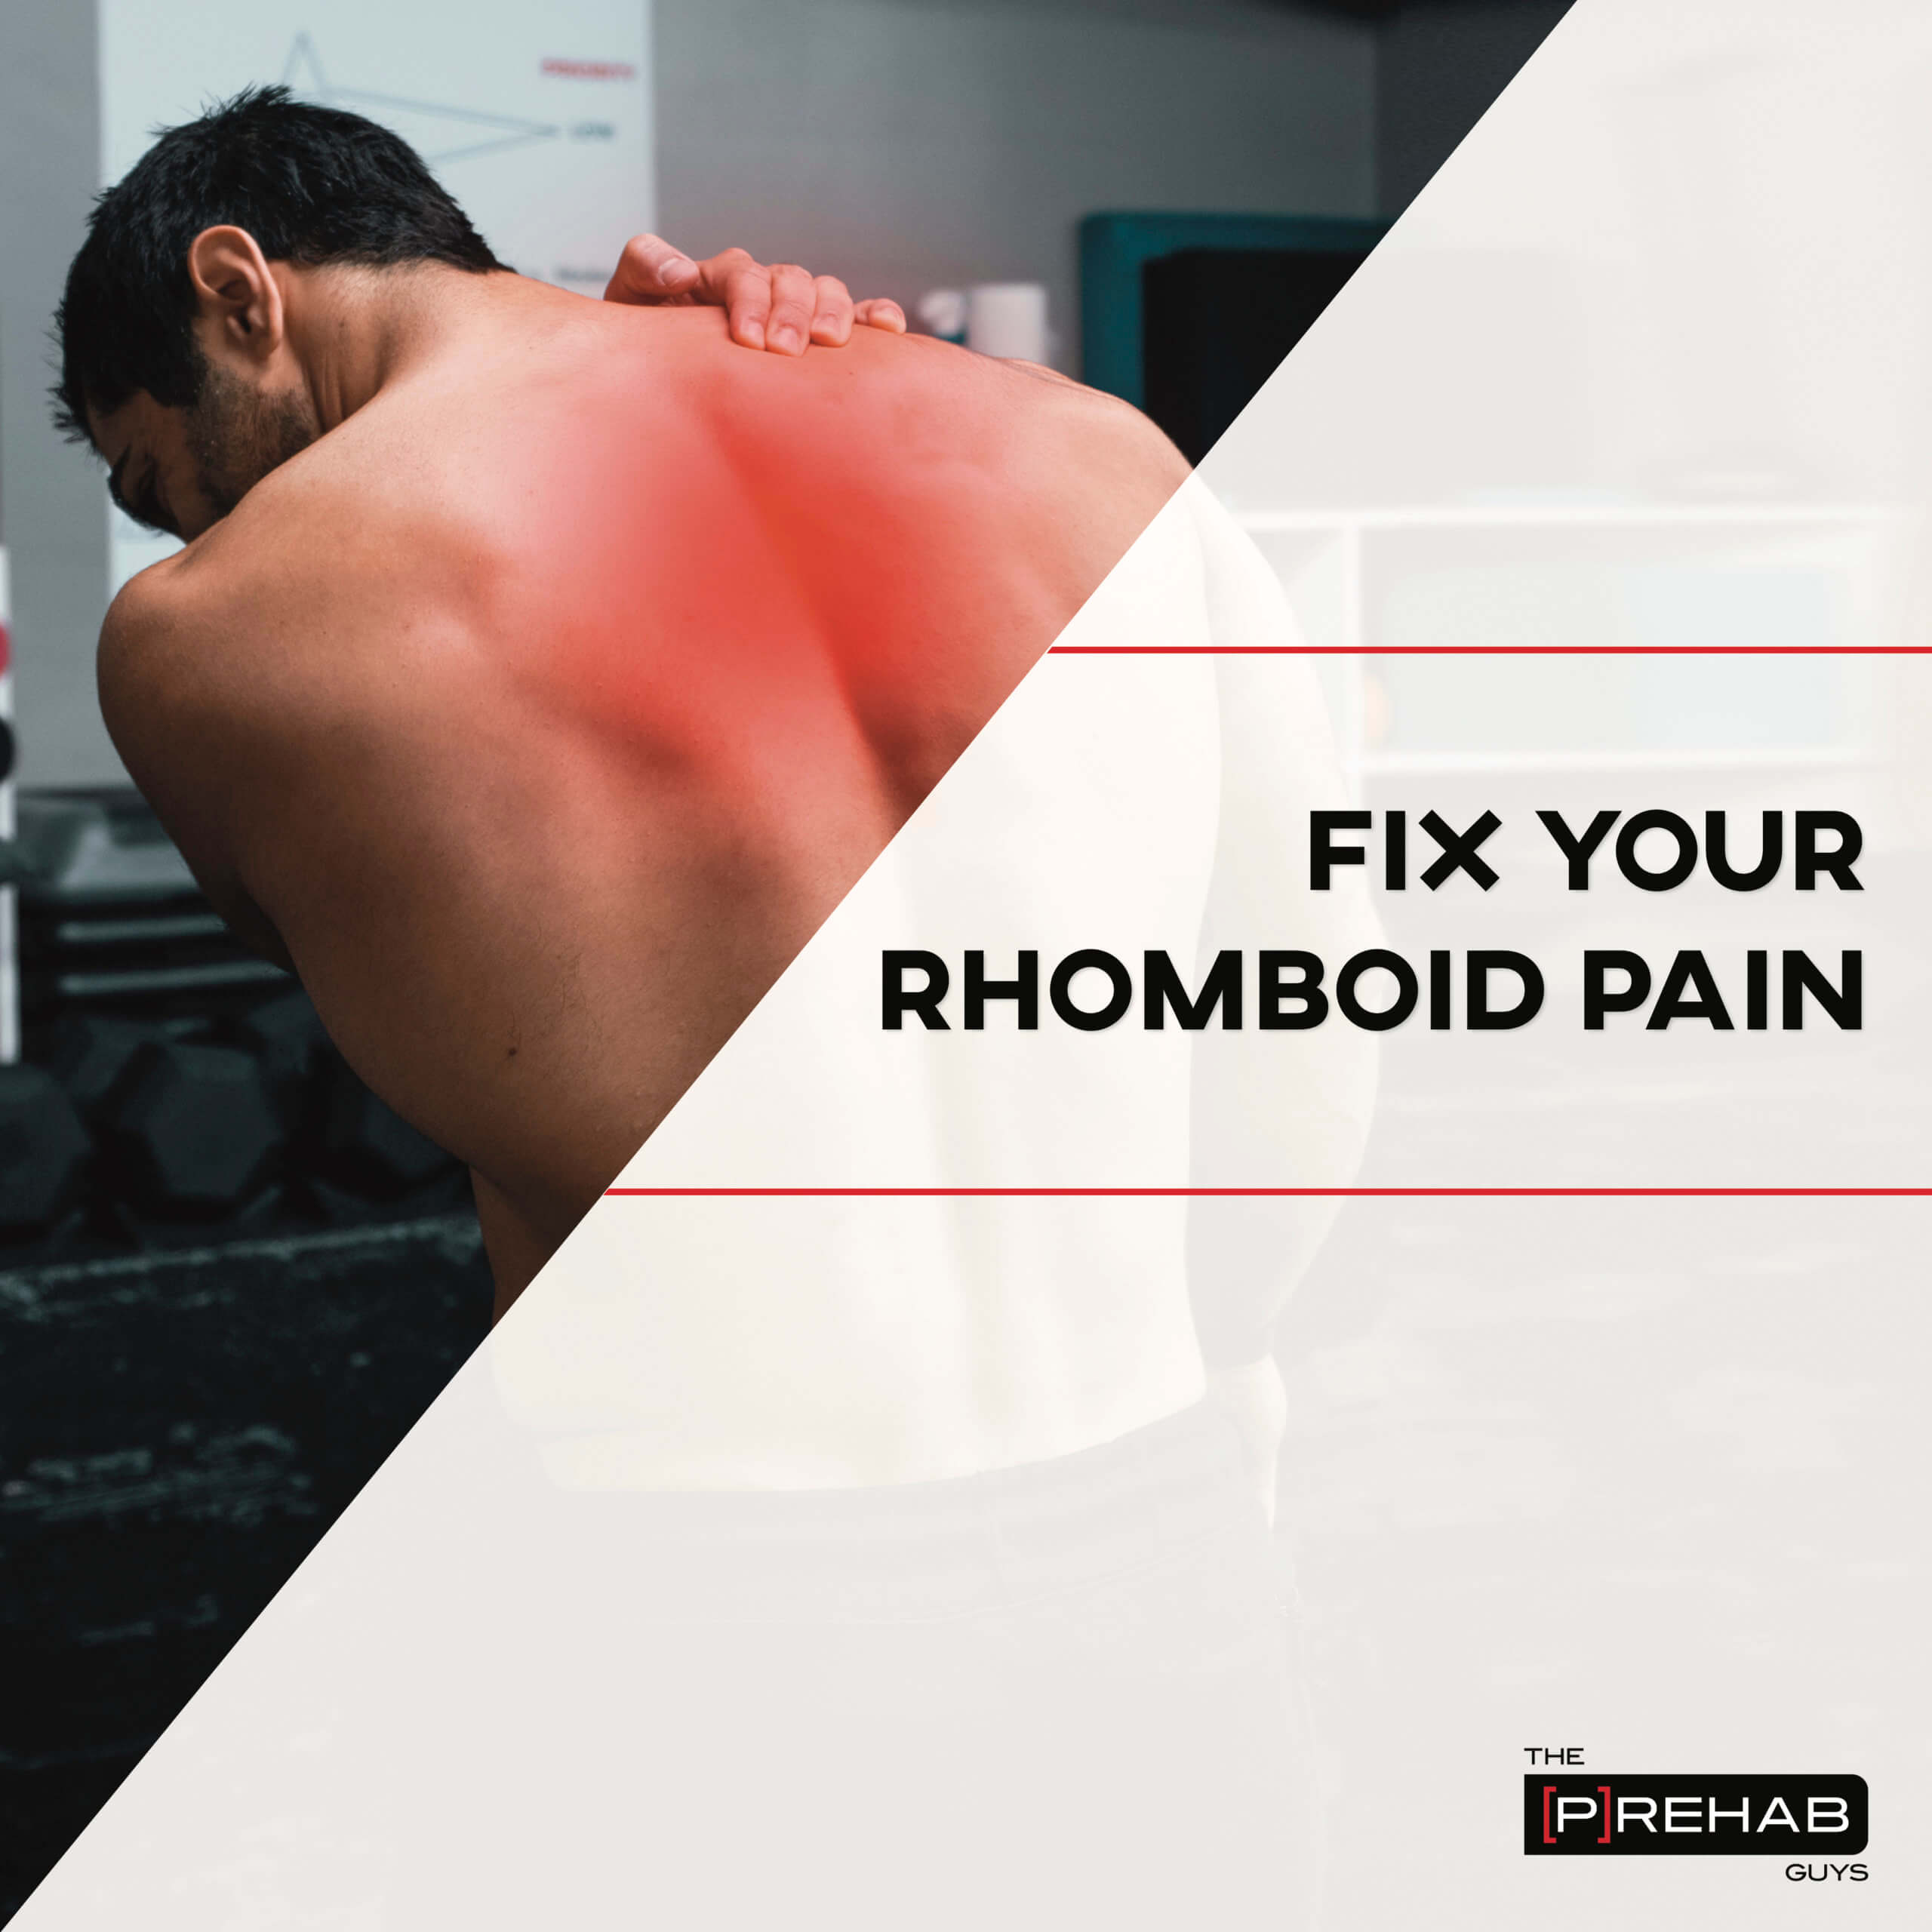 how to fix rhomboid pain workout the prehab guys